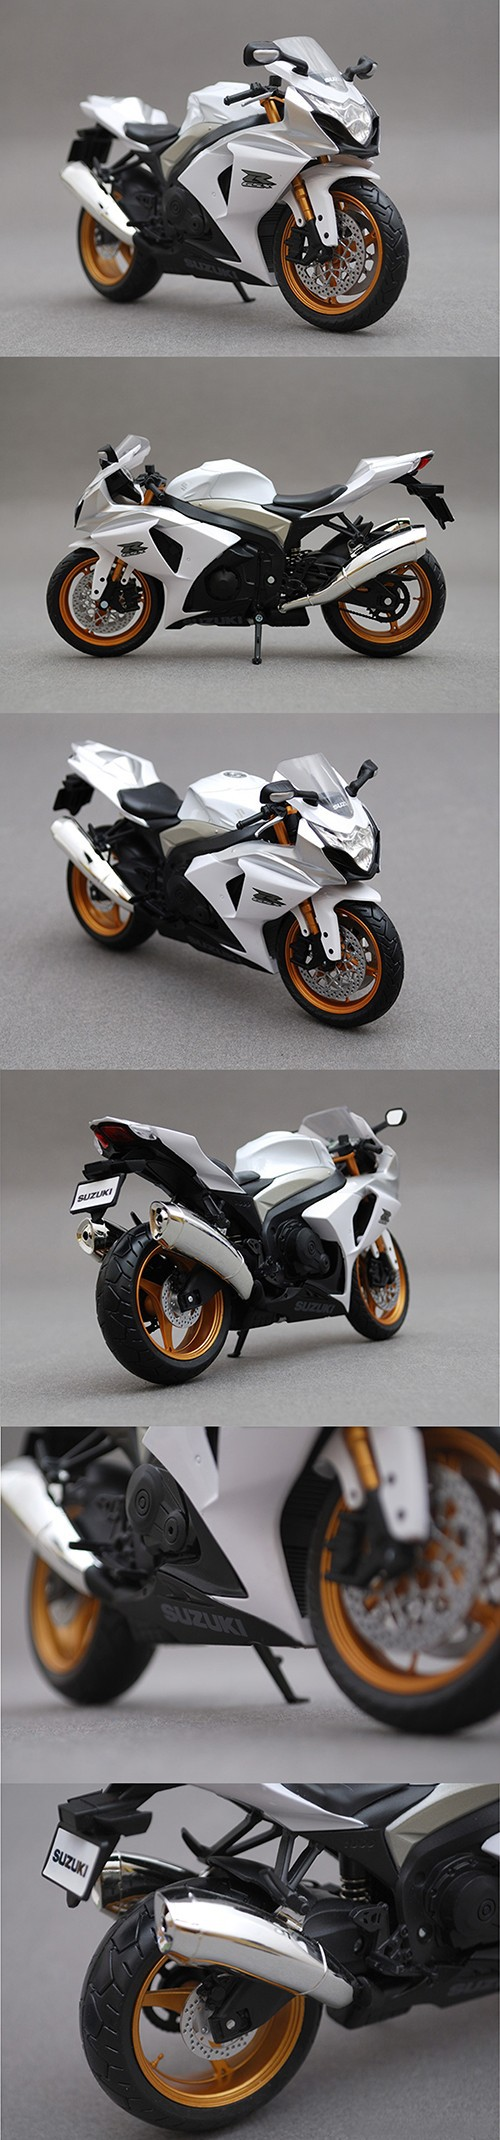 SZK K9 GSX R-1000 White 1:12 scale metal diecast models motor bike miniature race Toy For Gift Collection